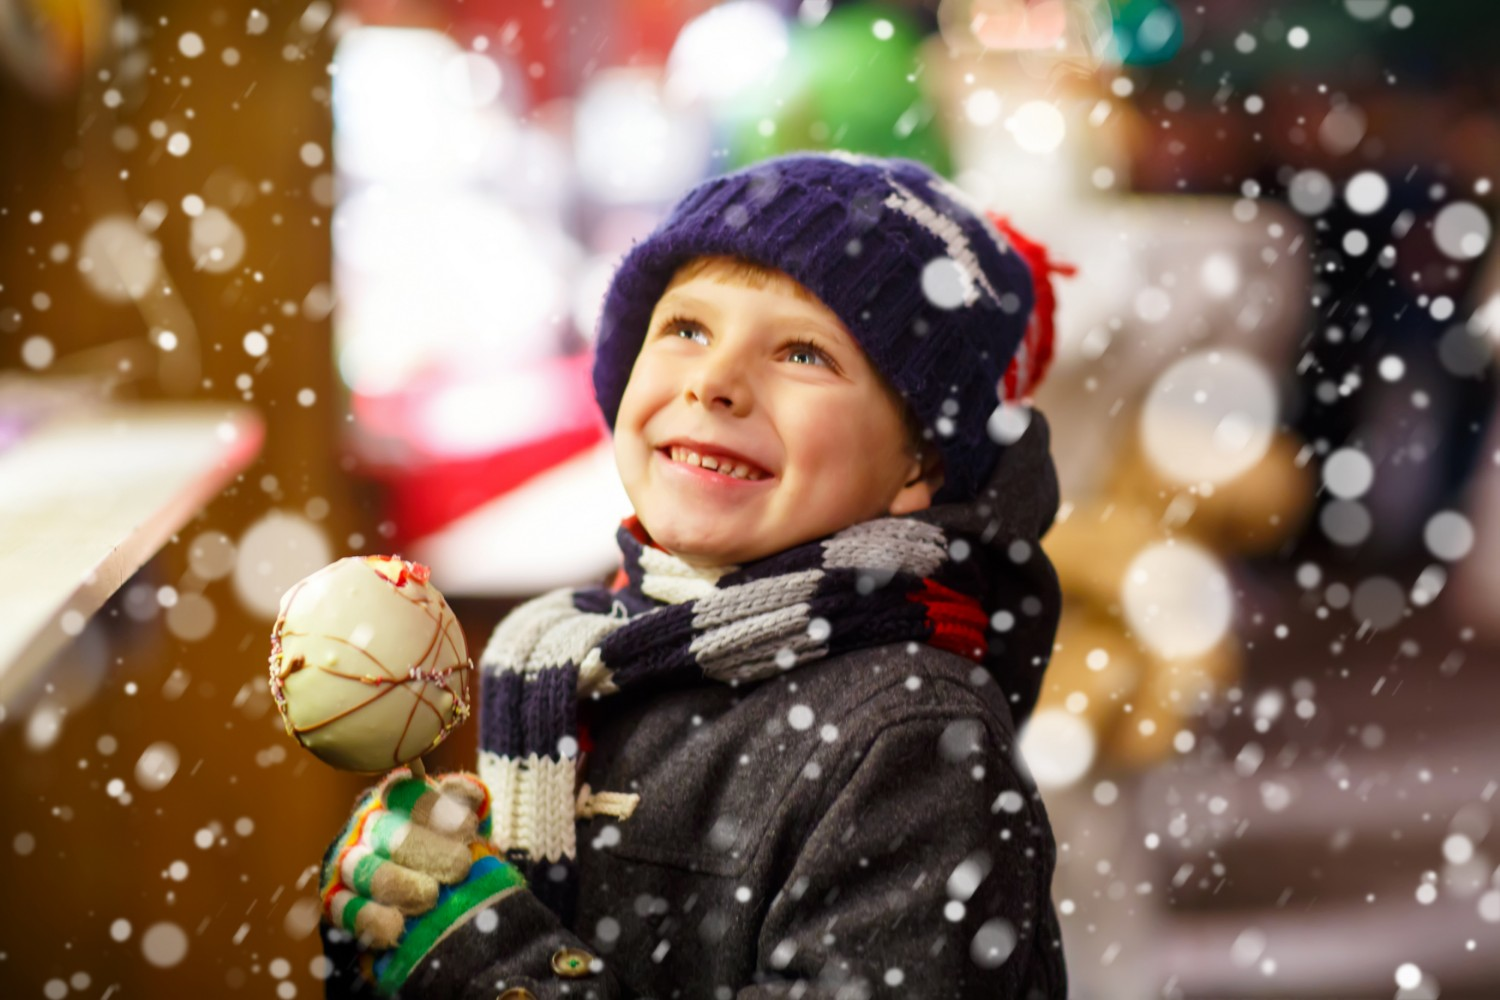 Child standing in the snow holding a caramel apple